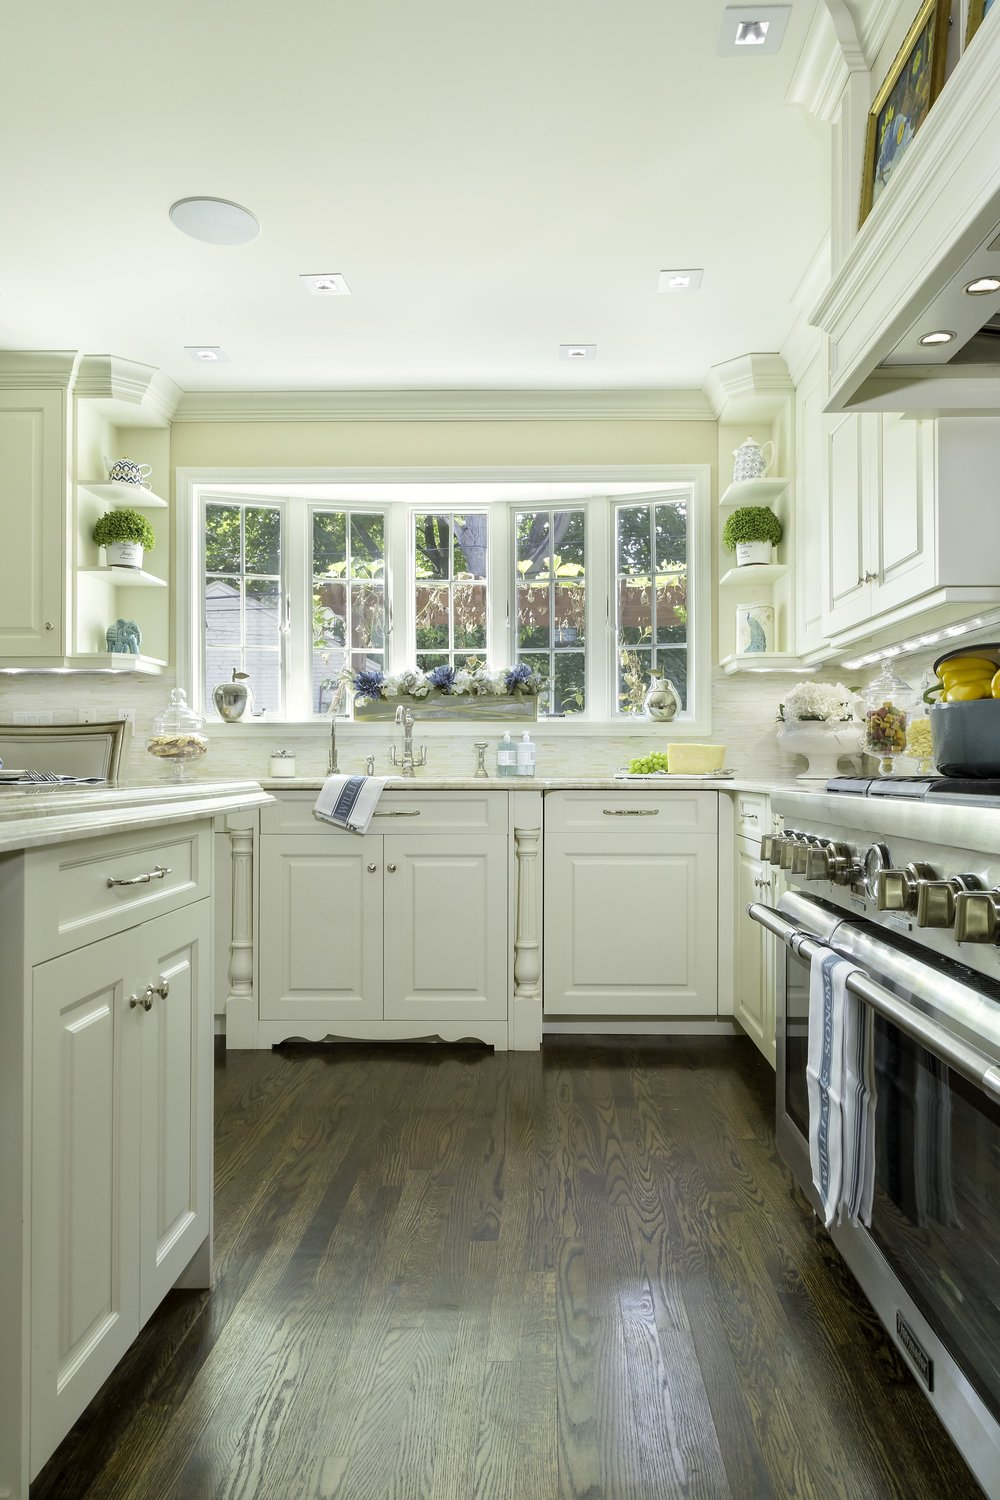 Traditional style kitchen with elegant hardwood flooring